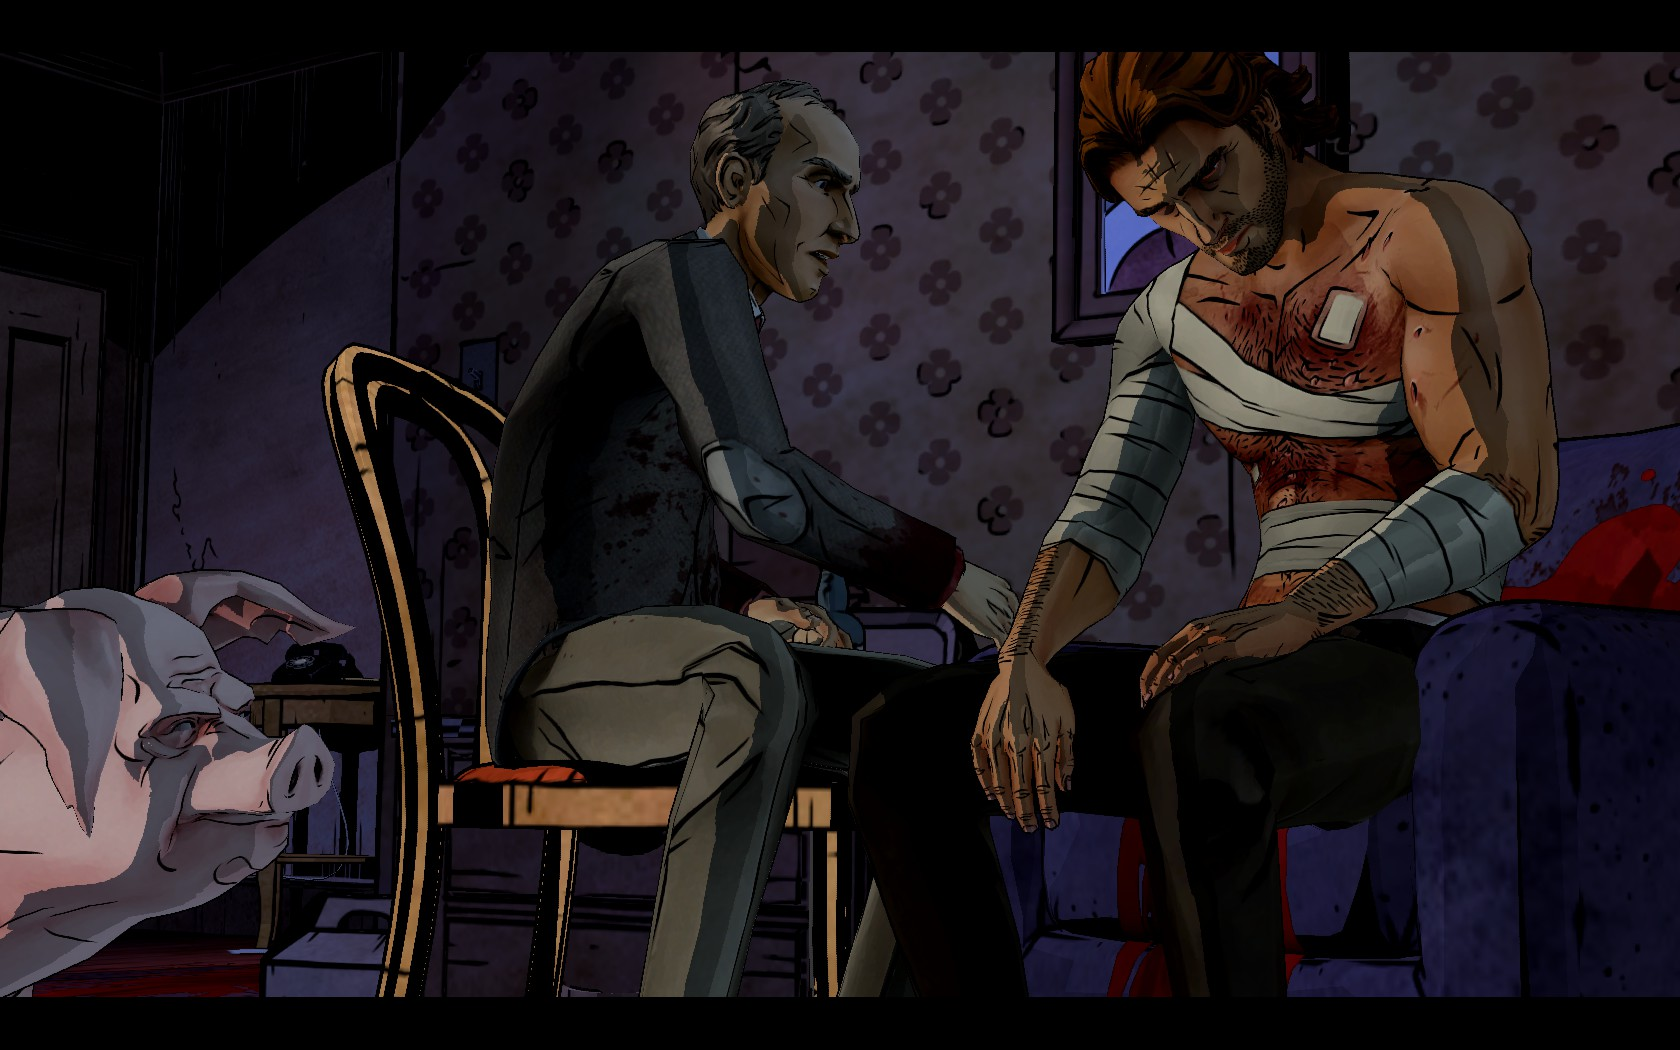 Bigby isn't doing so hot after his confrontation with Bloody Mary.